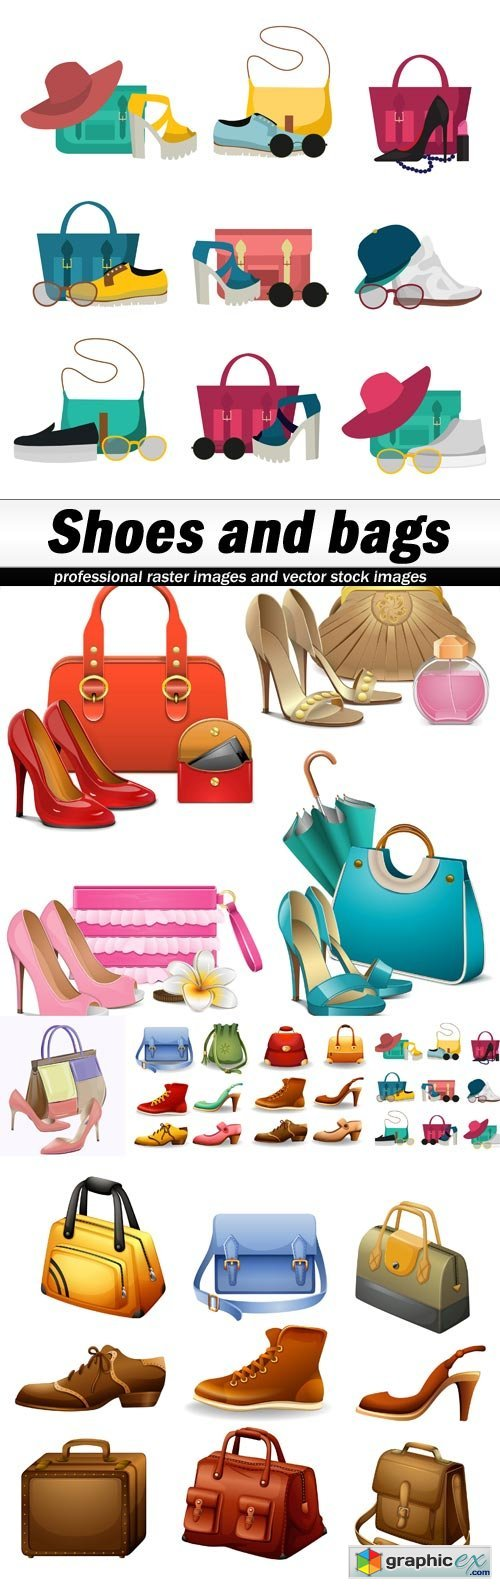 Shoes and bags - 5 UHQ JPEG